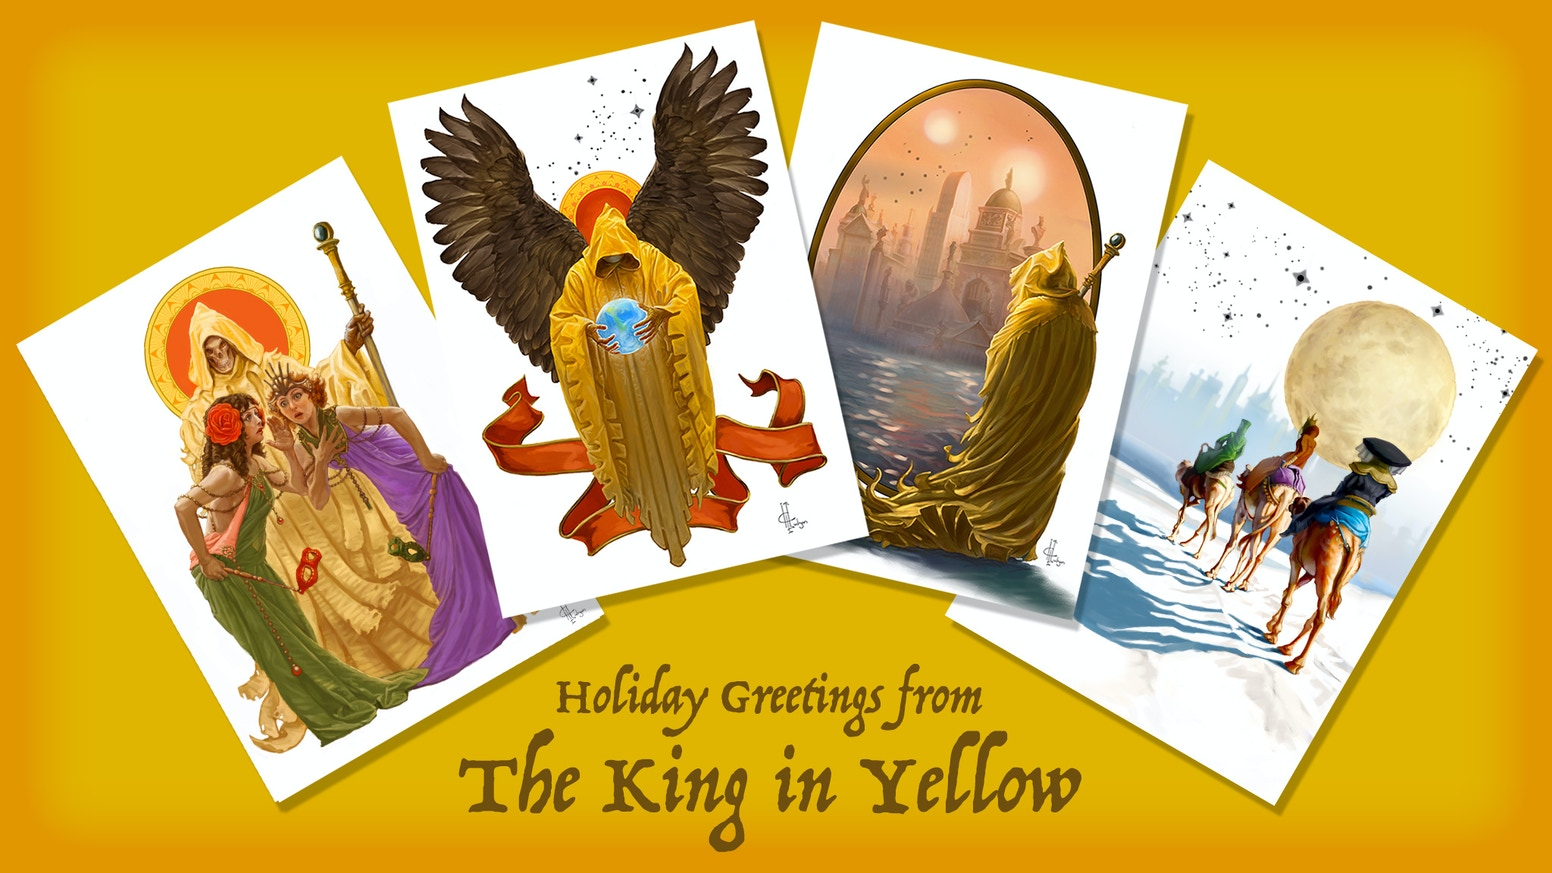 Make your holidays a little stranger with these 4 King in Yellow inspired Christmas cards beautifully illustrated by Heather Hudson.